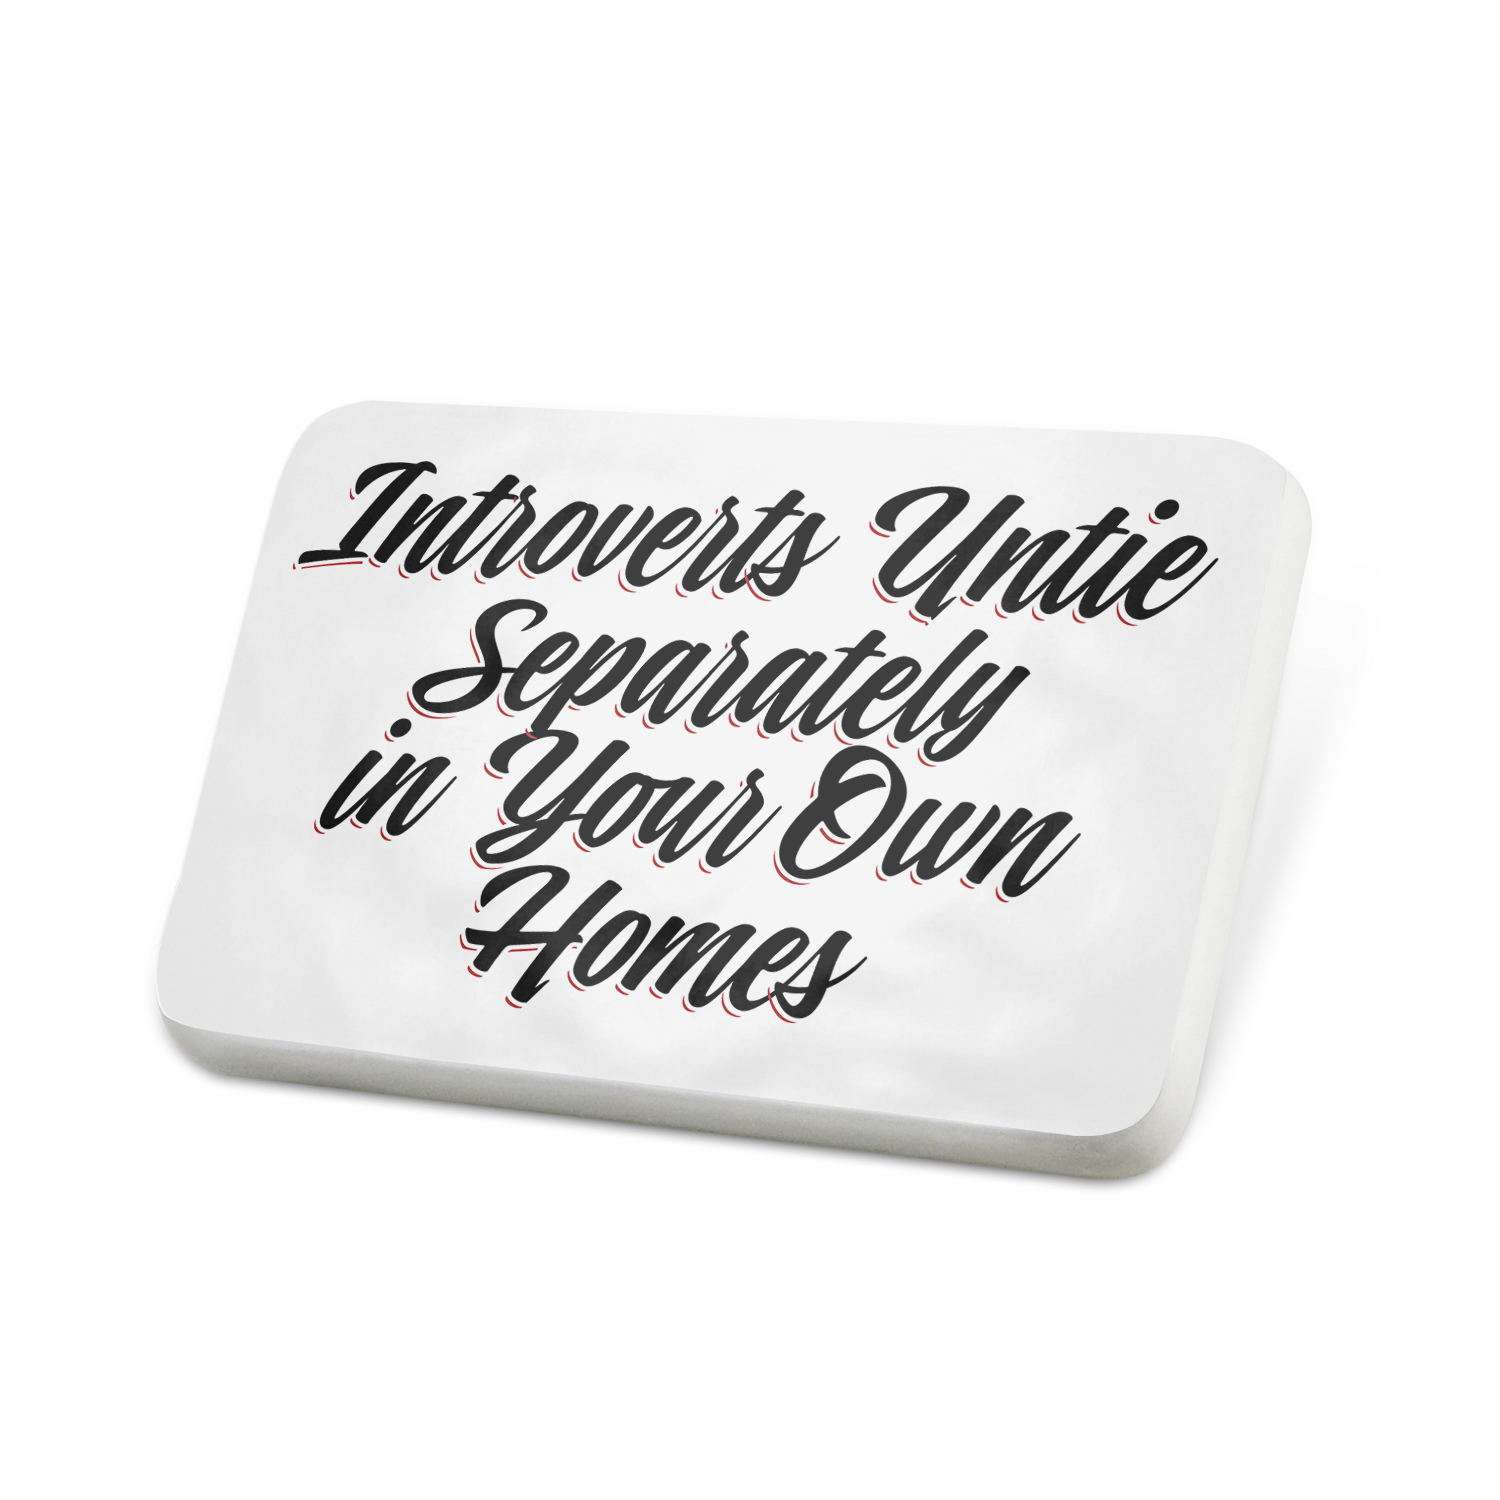 Porcelein Pin Vintage Lettering Introverts Untie Separately in Your Own Homes Lapel Badge – NEONBLOND